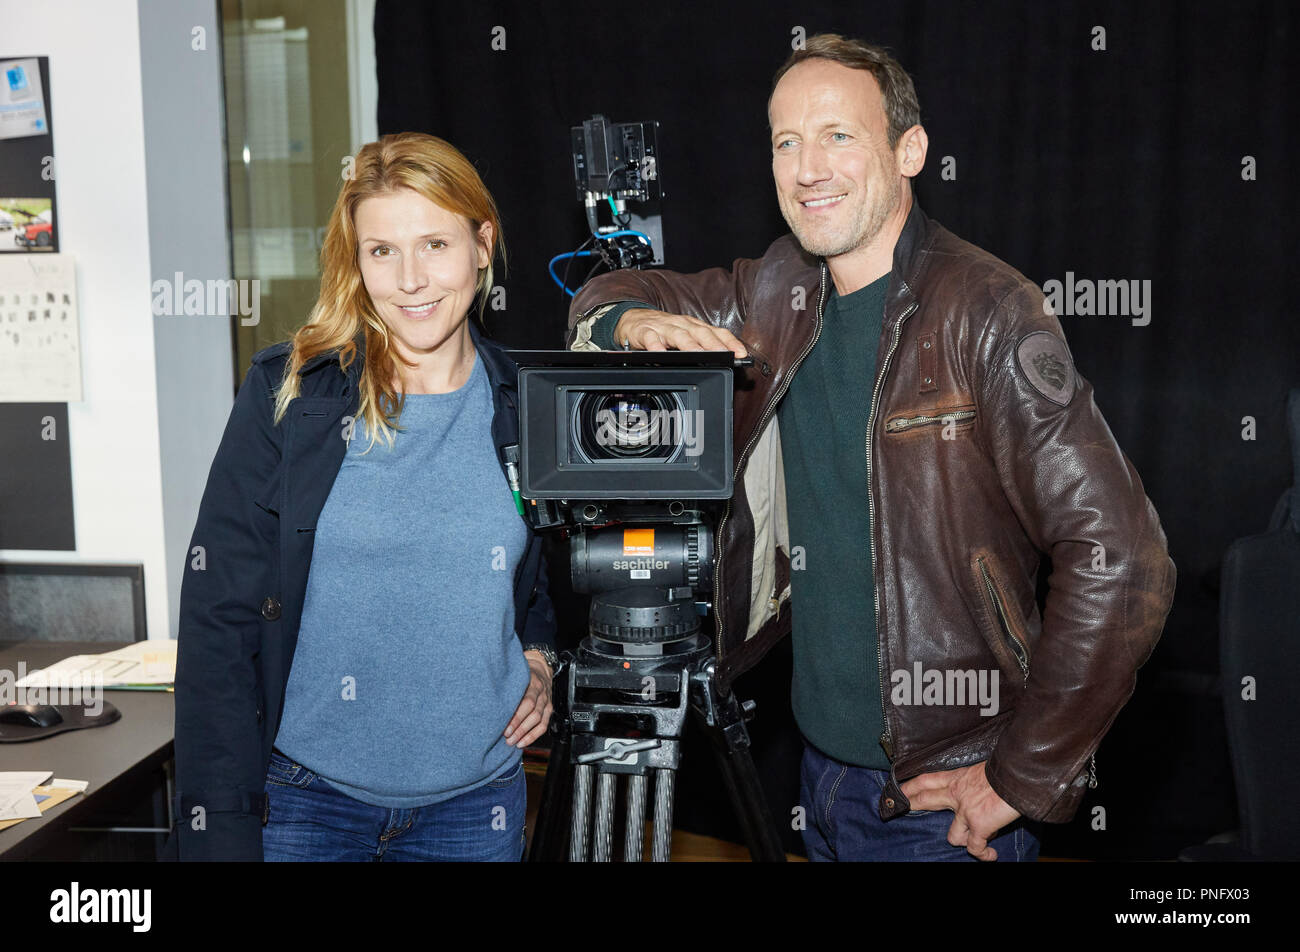 21 September 2018, Hamburg: Actors Wotan Wilke Moehring and Franziska Weisz standing on the set of the NDR crime series 'Tatort: Kollateralschaden' ('Crime scene: Collateral damages') during a photo shoot. Dar Erste will tentatively release the episode next year. Photo: Georg Wendt/dpa - Stock Image